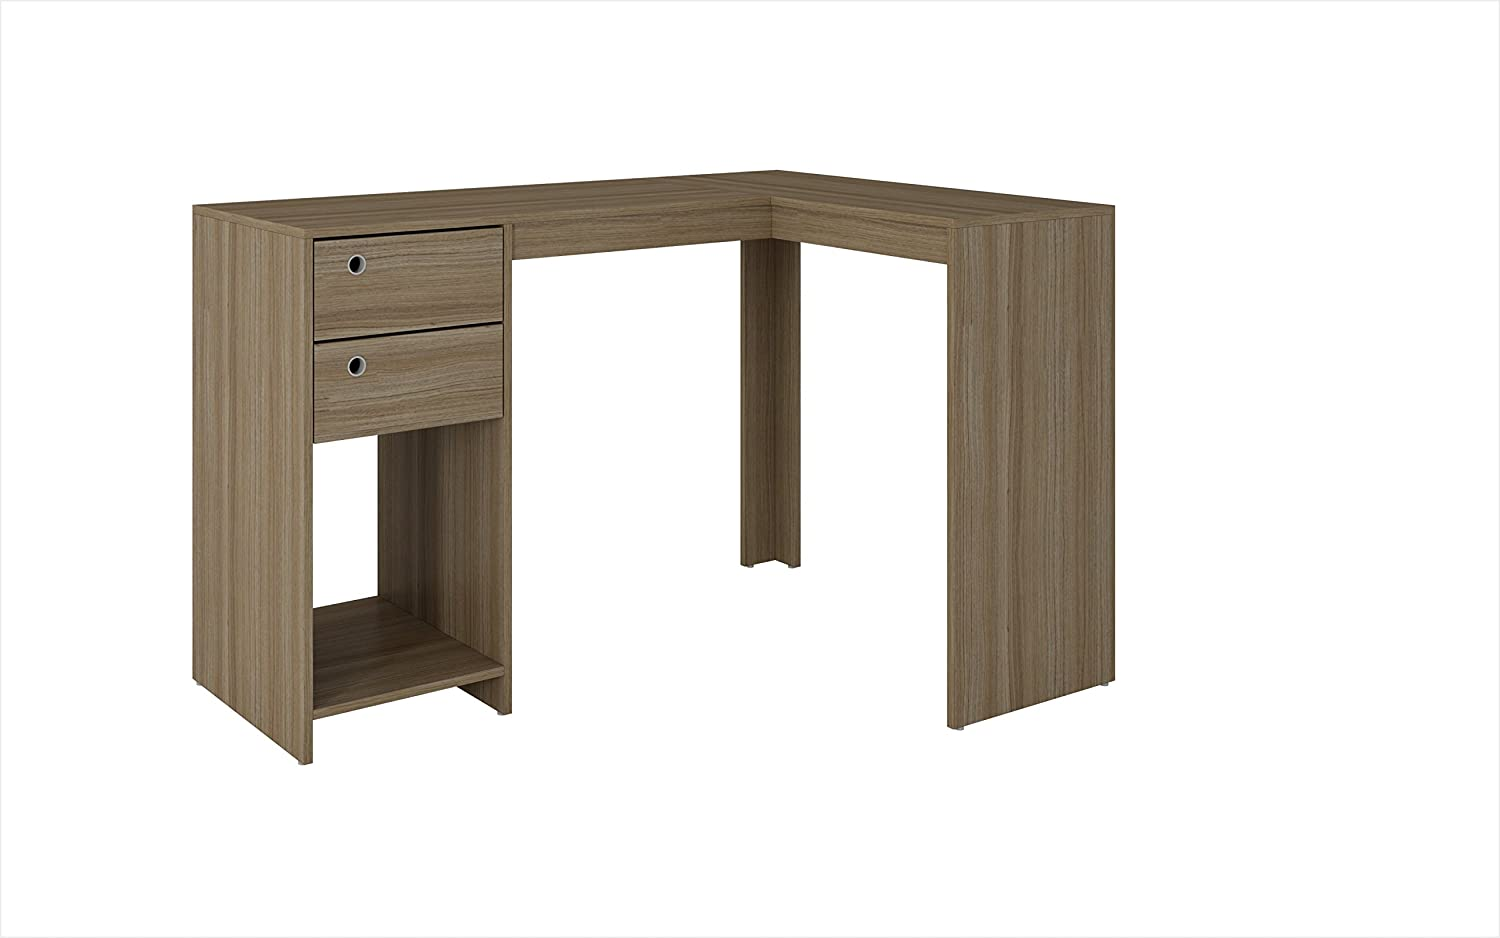 Manhattan Comfort Accentuations by Modest Palermo ClassicL Shaped Desk with 2 Drawers and 1 Cubby in Oak 41AMC23